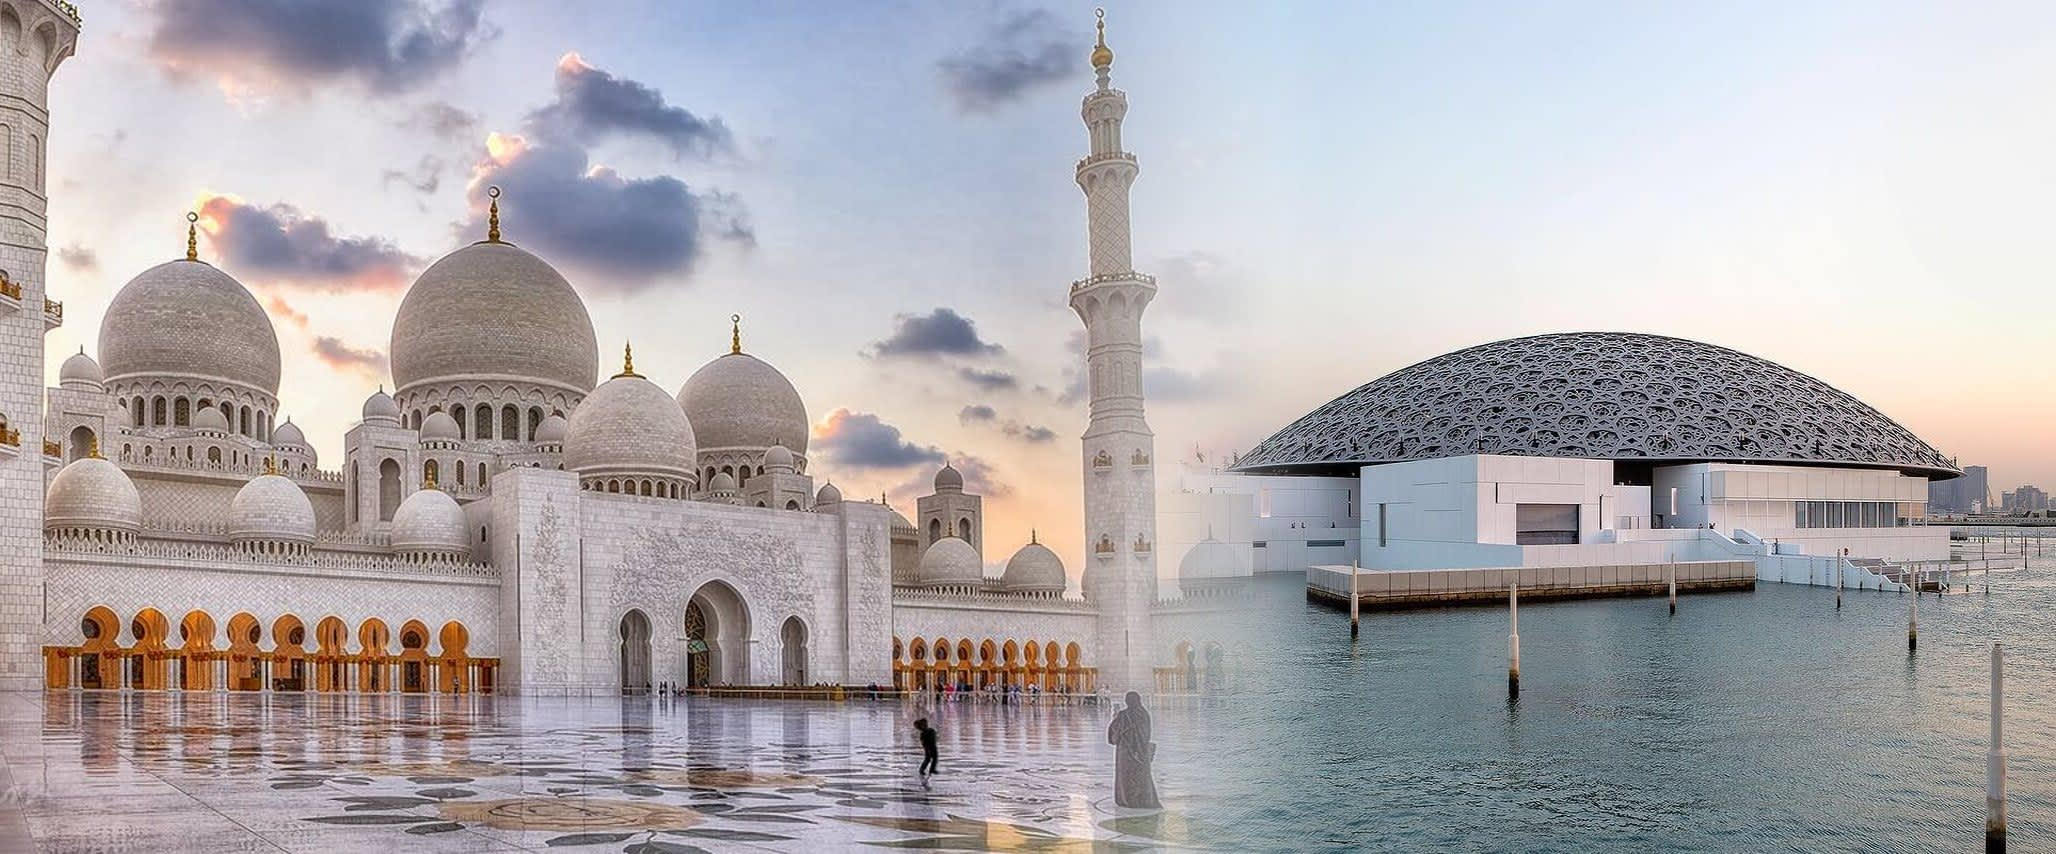 Abu Dhabi Highlights with Louvre Museum & Grand Mosque